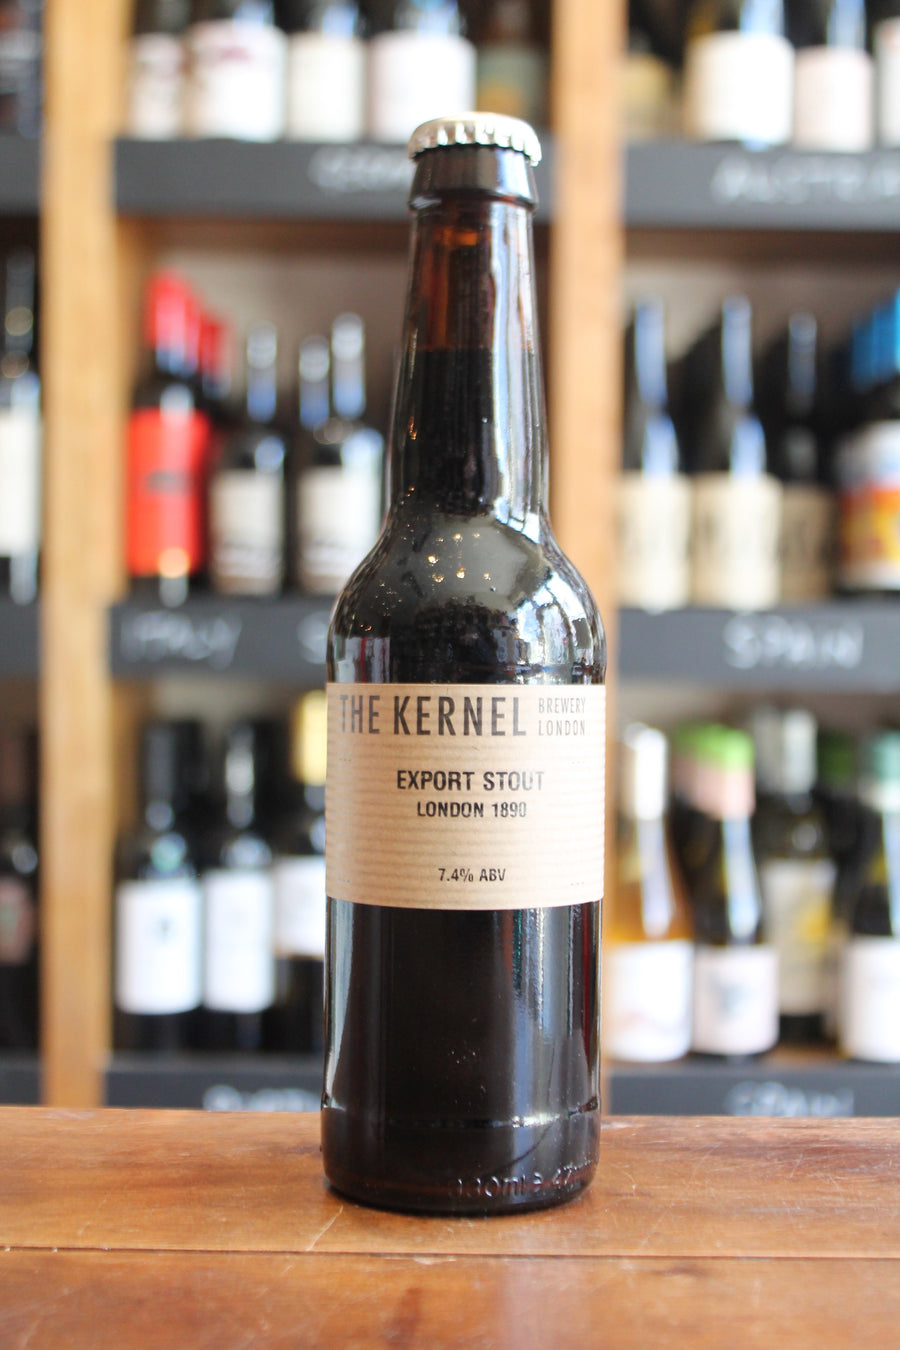 The Kernel Brewery Export Stout